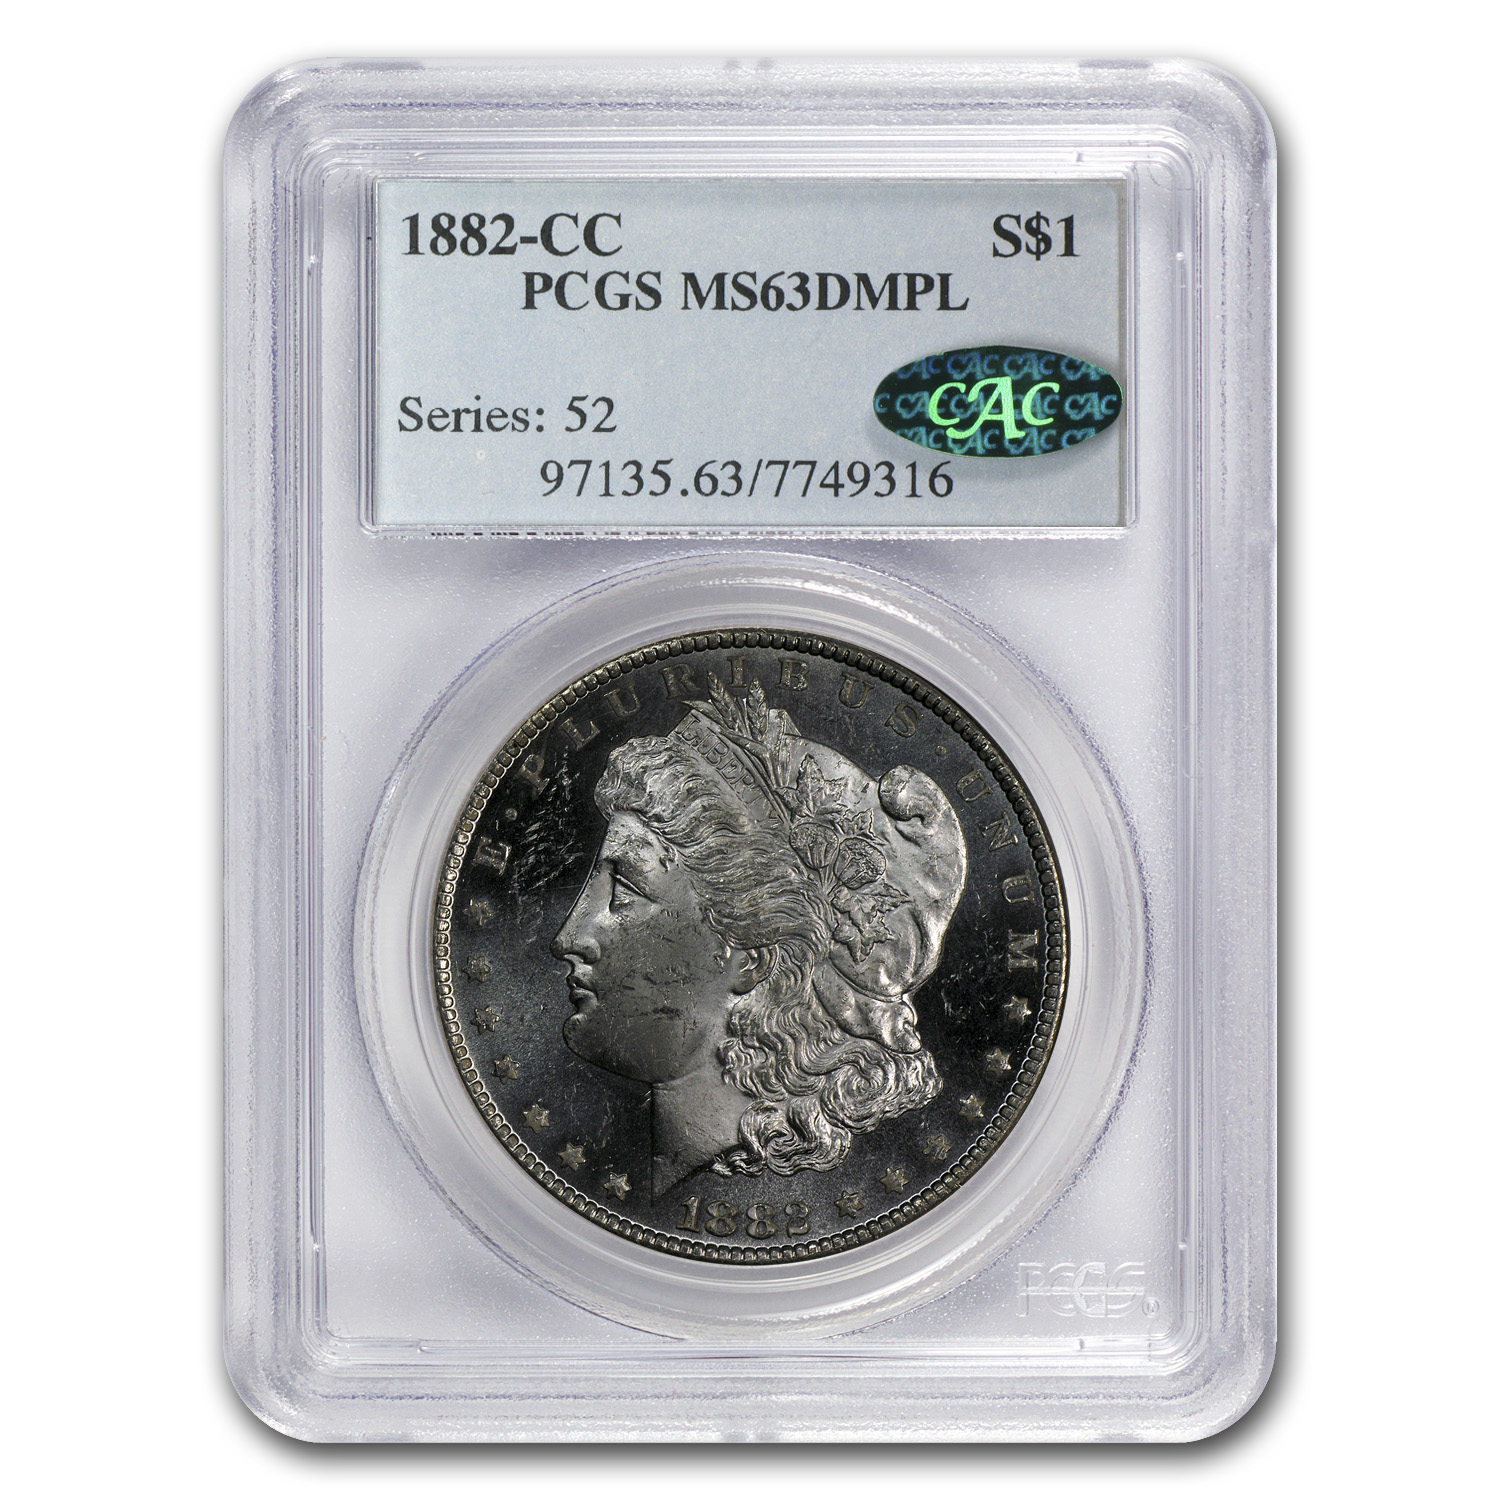 1882-CC Morgan Dollar MS-63 DMPL Deep Mirror Proof Like PCGS CAC